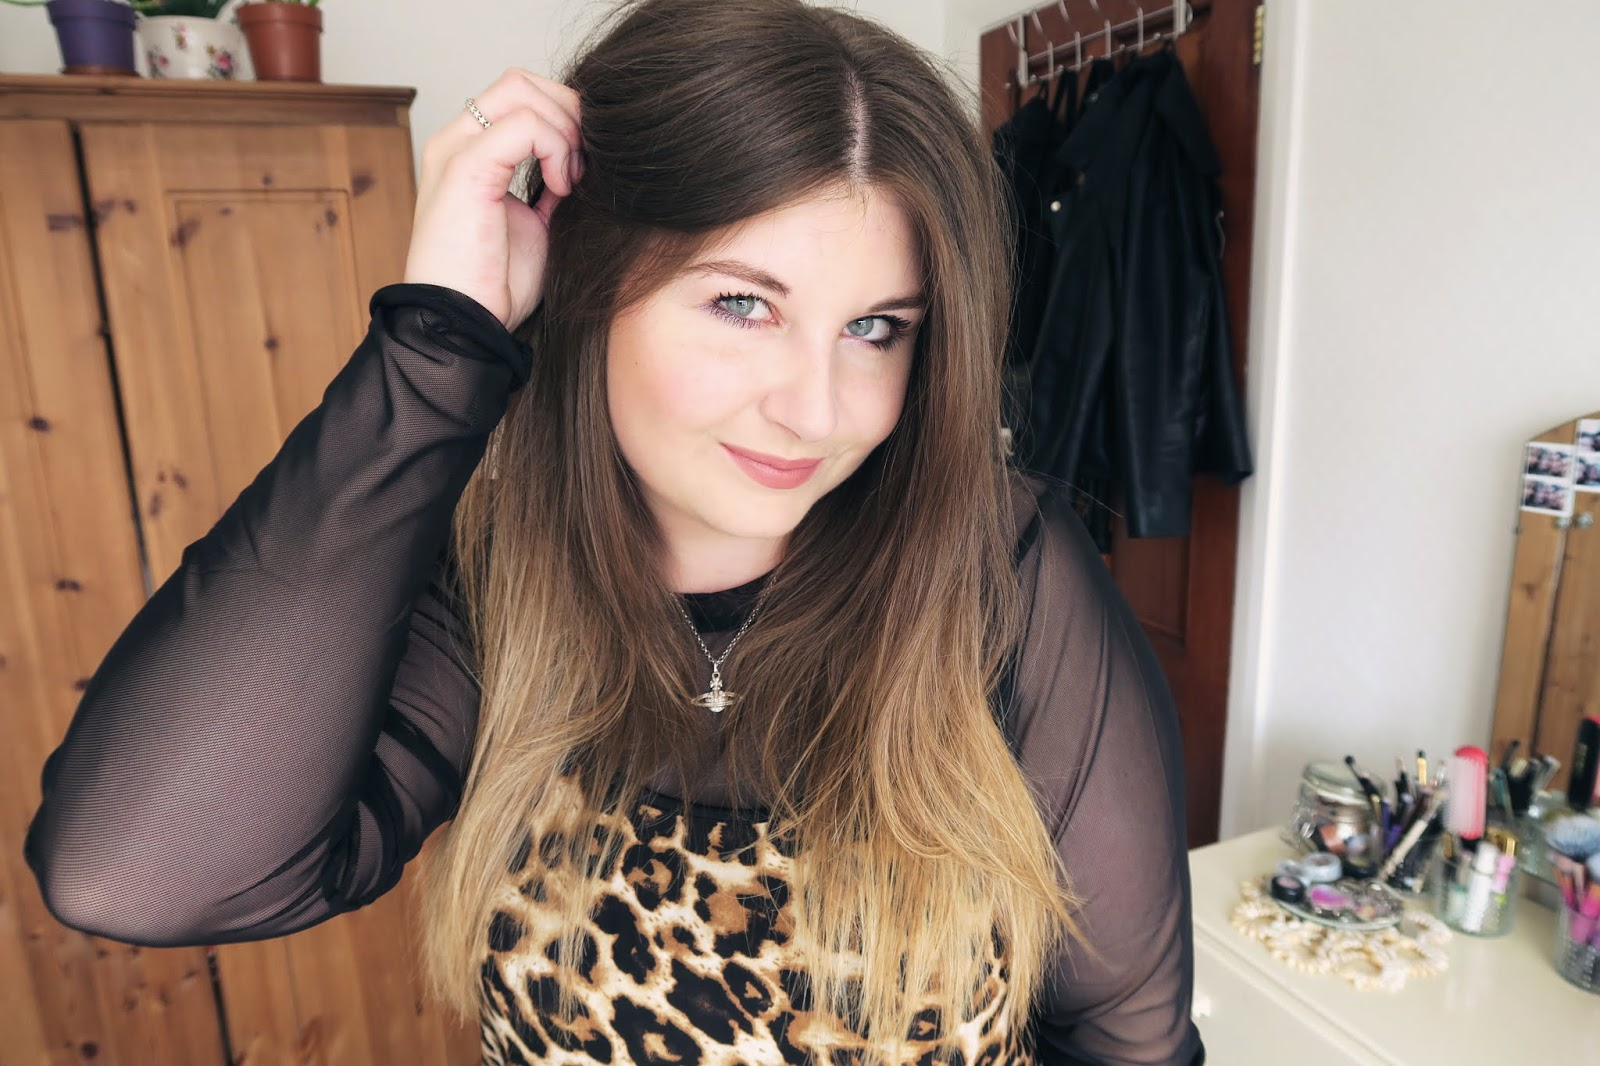 Wearing a leopard print cami top with a black mesh top underneath